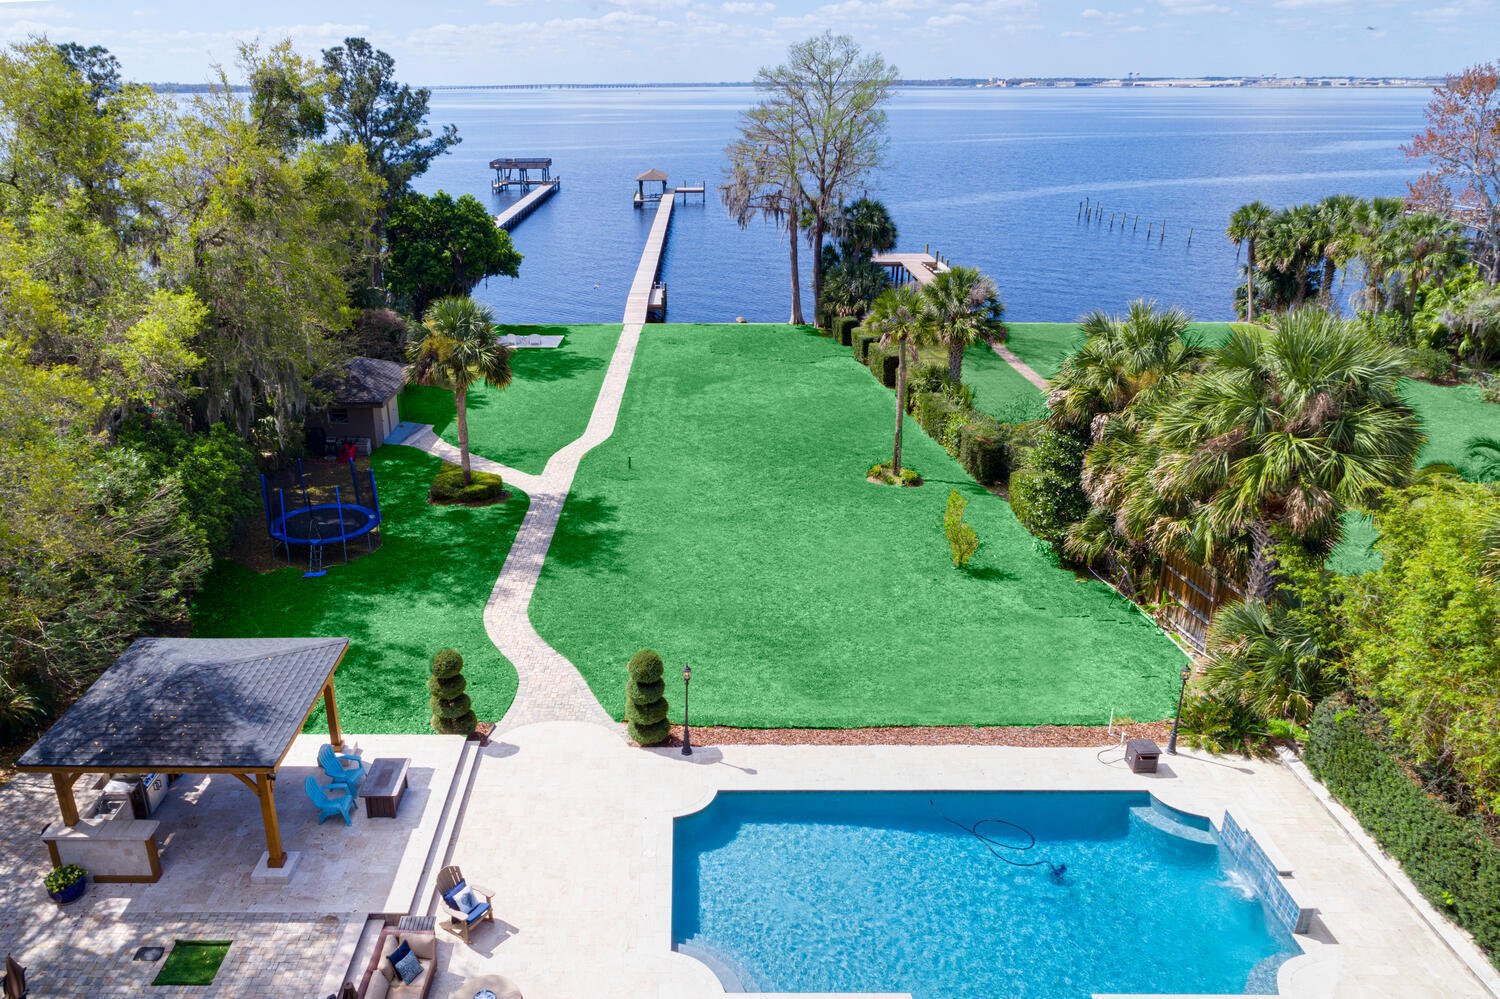 WELCOME TO RESORT-STYLE LIVING!! Stunning and spacious home perfectly nestled on a deep St. Johns River lot just one block north of The Bolles school! Complete with newly renovated kitchen, master suite and bathroom with steam shower. BRAND NEW ROOF, newly rebuilt dock complete with boat lift. New luxurious state-of-the-art, heated pool w/ LED lighting with patio & summer kitchen - everything you need to entertain or spend your afternoon watching the beautiful sunset in the comfort of your own waterfront sanctuary! Updates galore, including kitchen, flooring, electrical, plumbing, windows, HVACs and much more! Please see attached list of improvements. Unique opportunity to own a private riverfront estate with a deep lot; must see to appreciate!